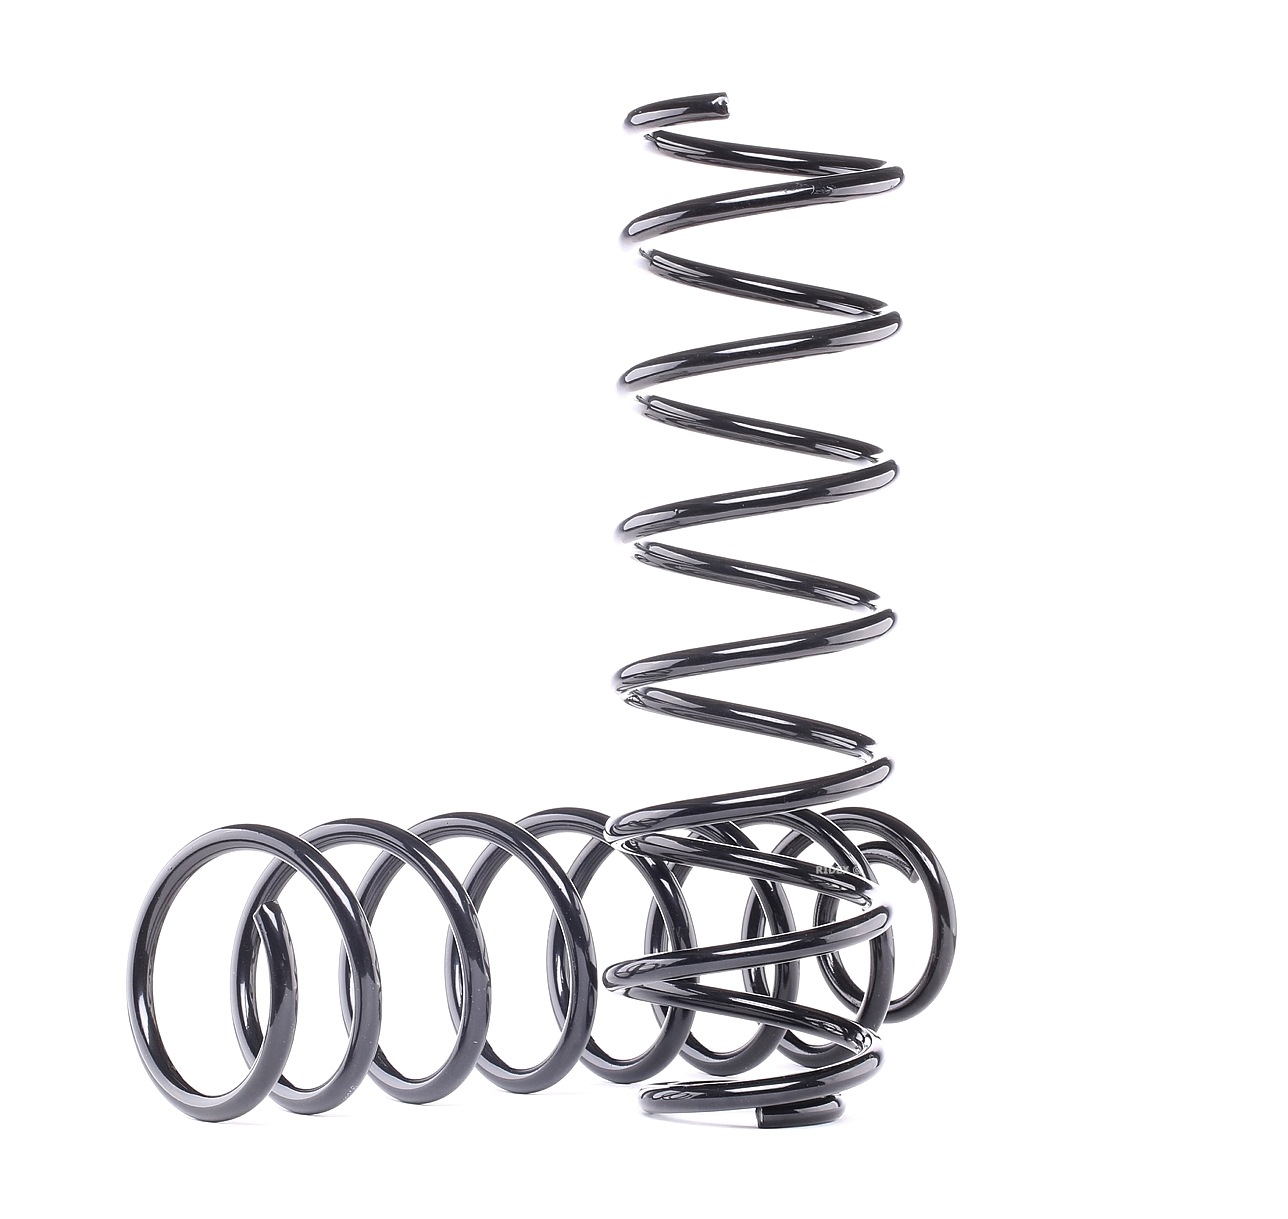 Coil springs RIDEX 189S0029 rating